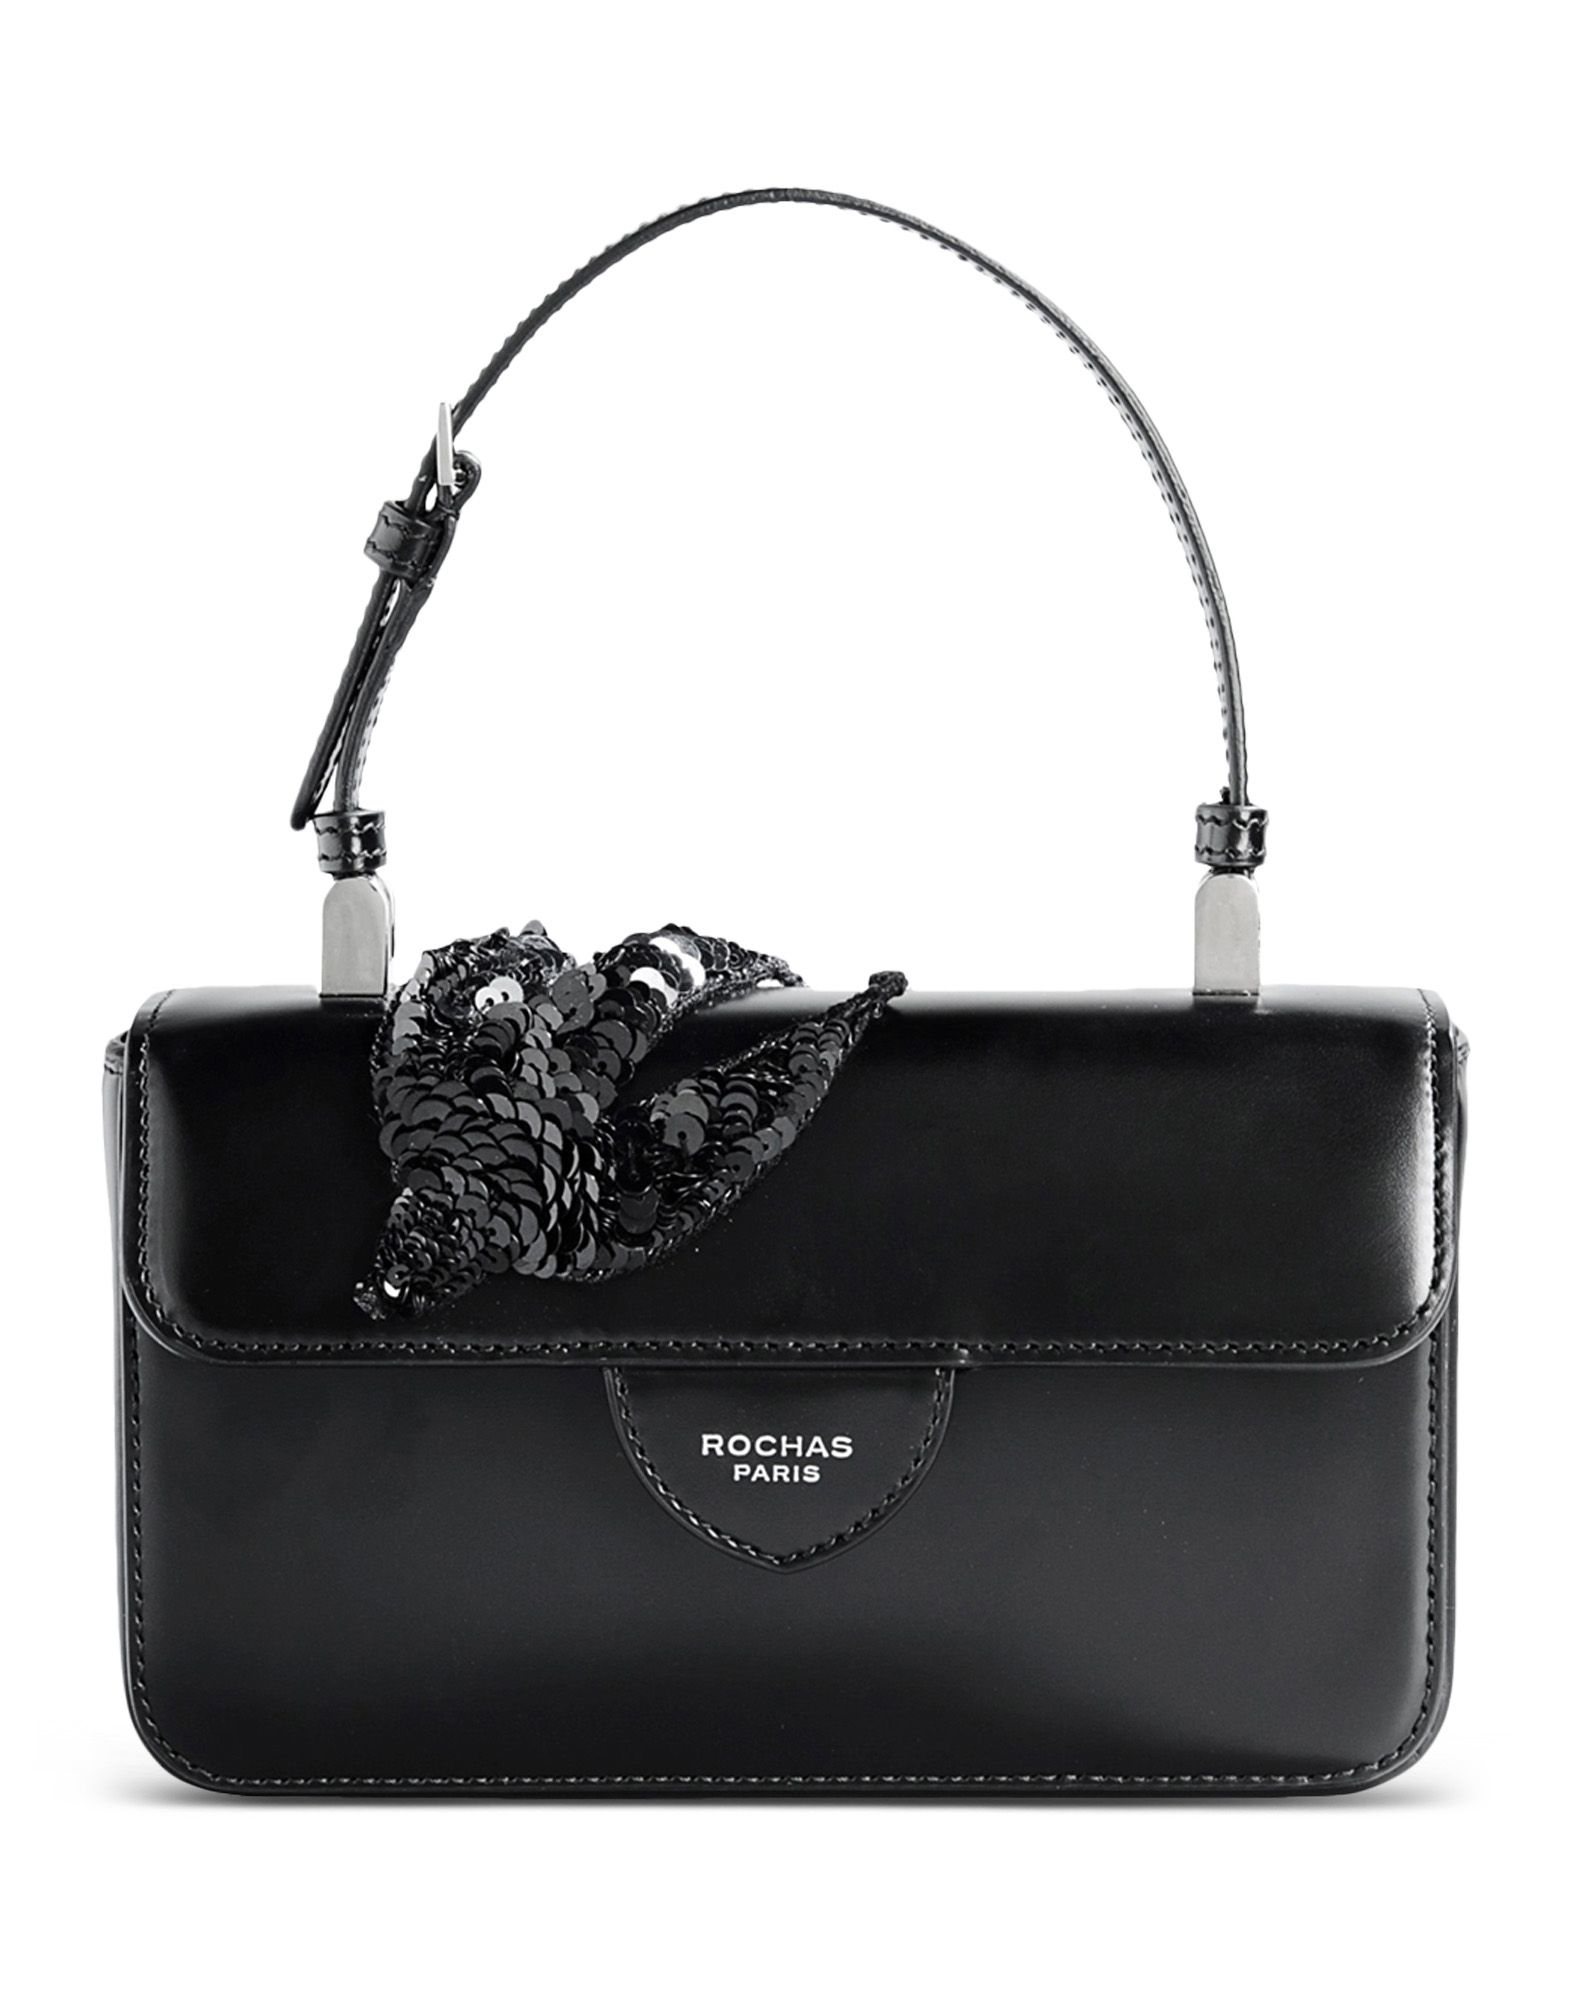 2bae9d31e5c7 Small Black Leather Bag | Stanford Center for Opportunity Policy in ...